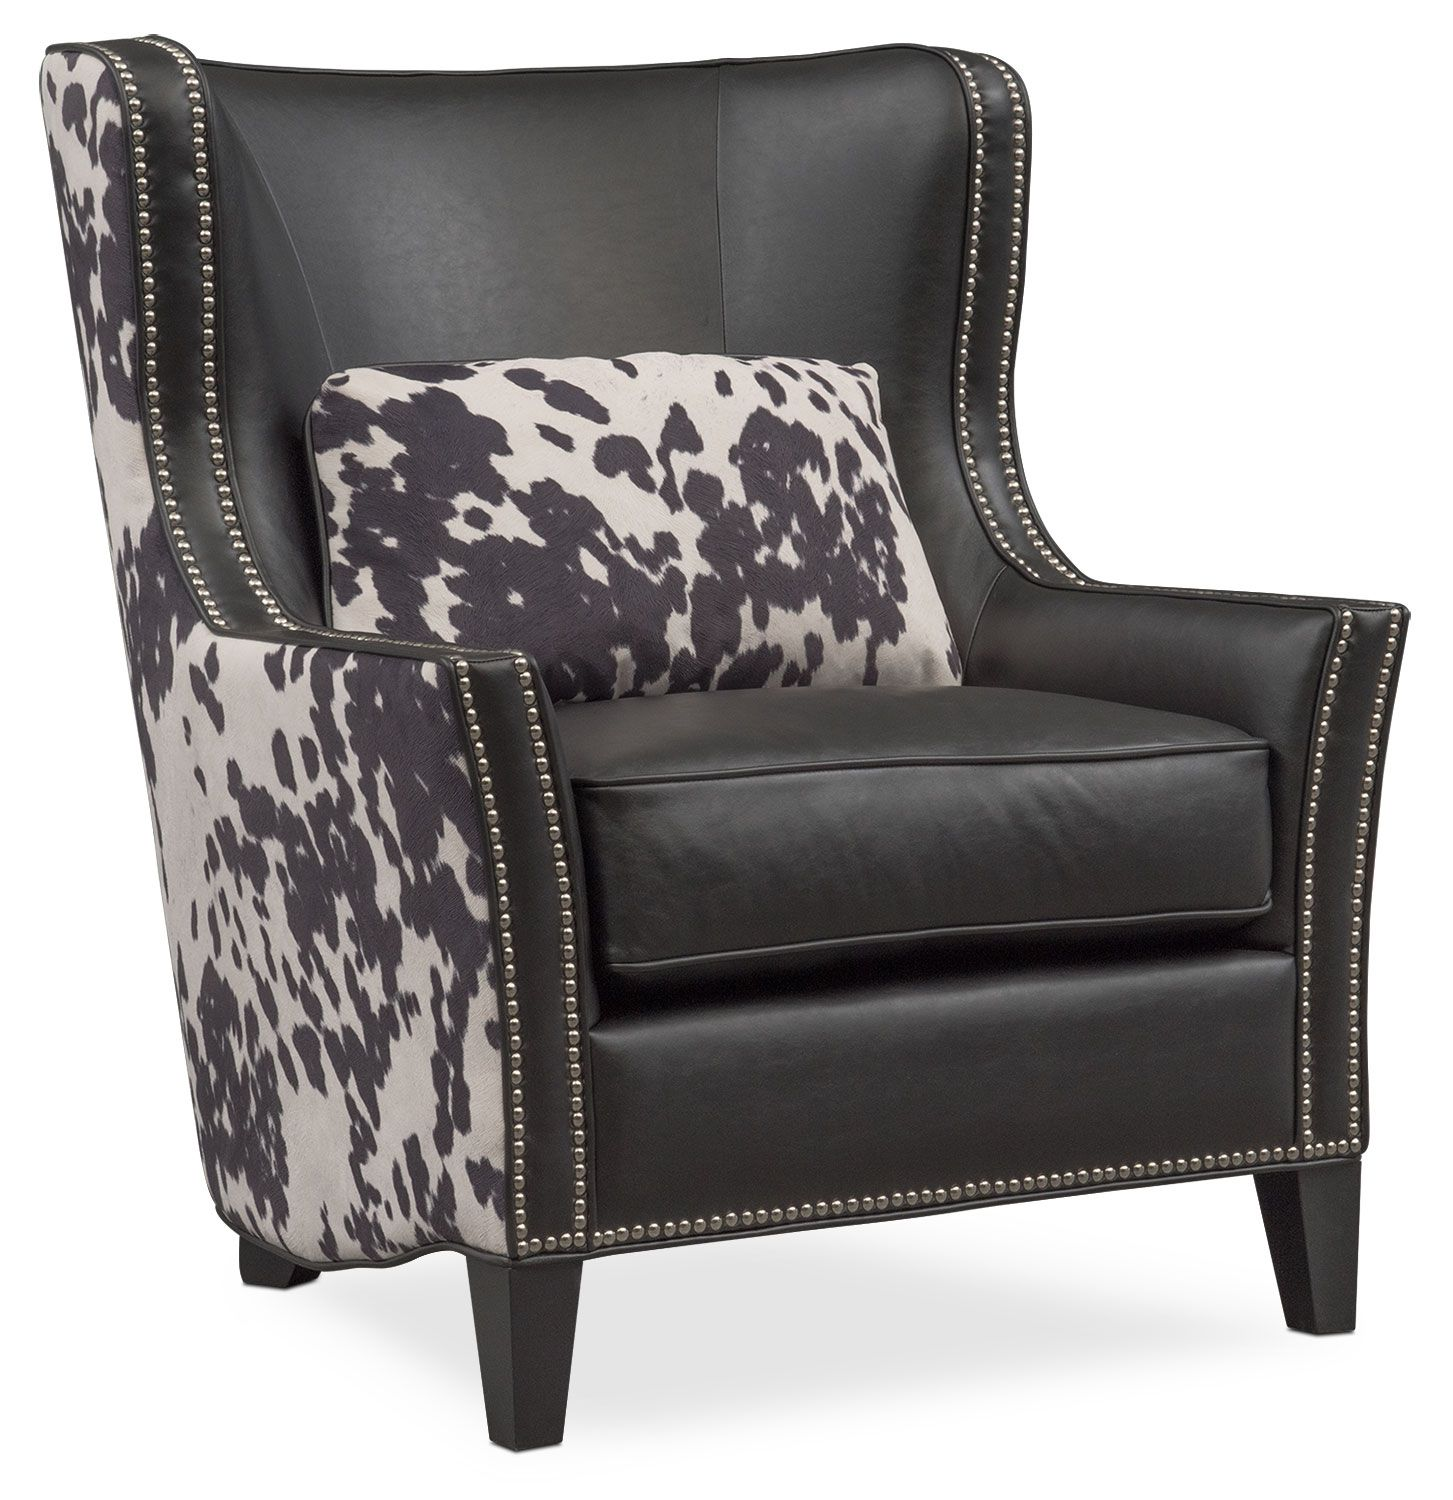 Santa Fe Accent Chair Furniture Value City Furniture Accent Chairs